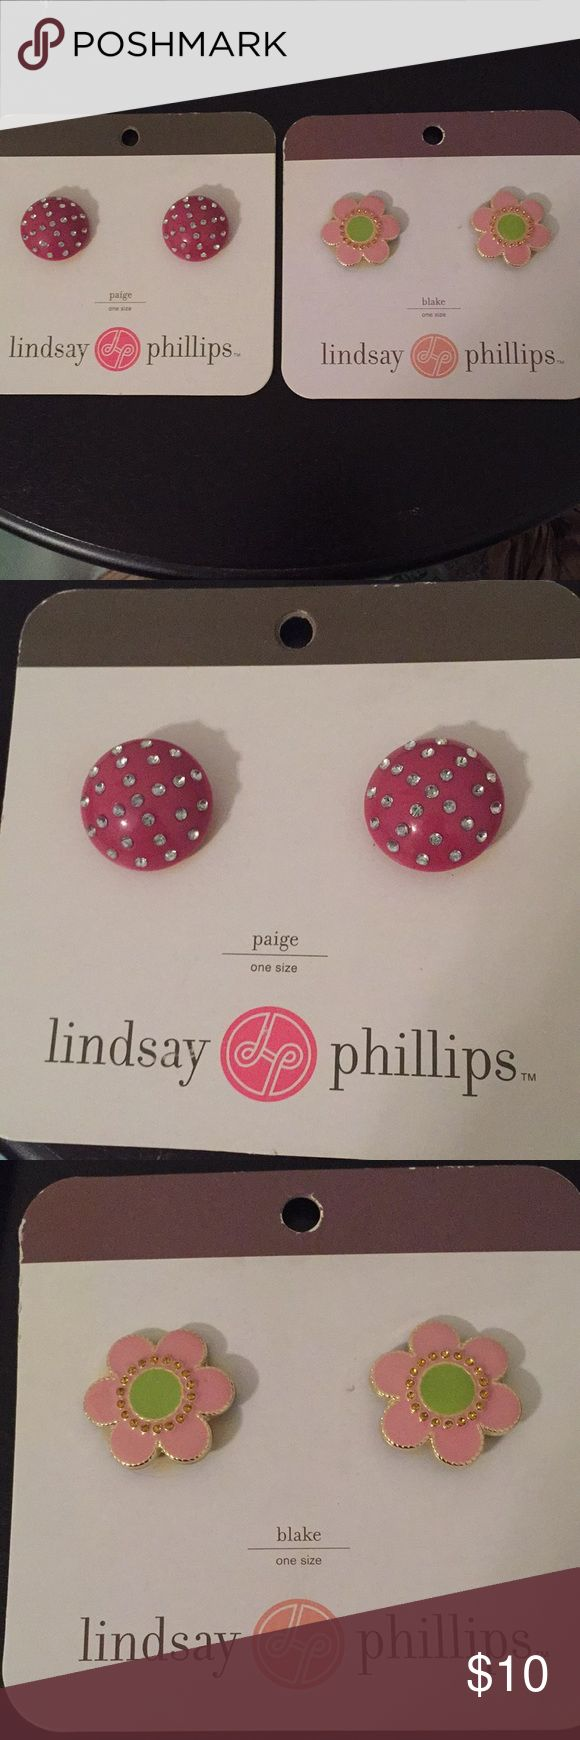 Lindsay Phillips Snap-Ons You will receive BOTH as seen! I ship the same or next day! Lindsay Phillips Shoes Sandals